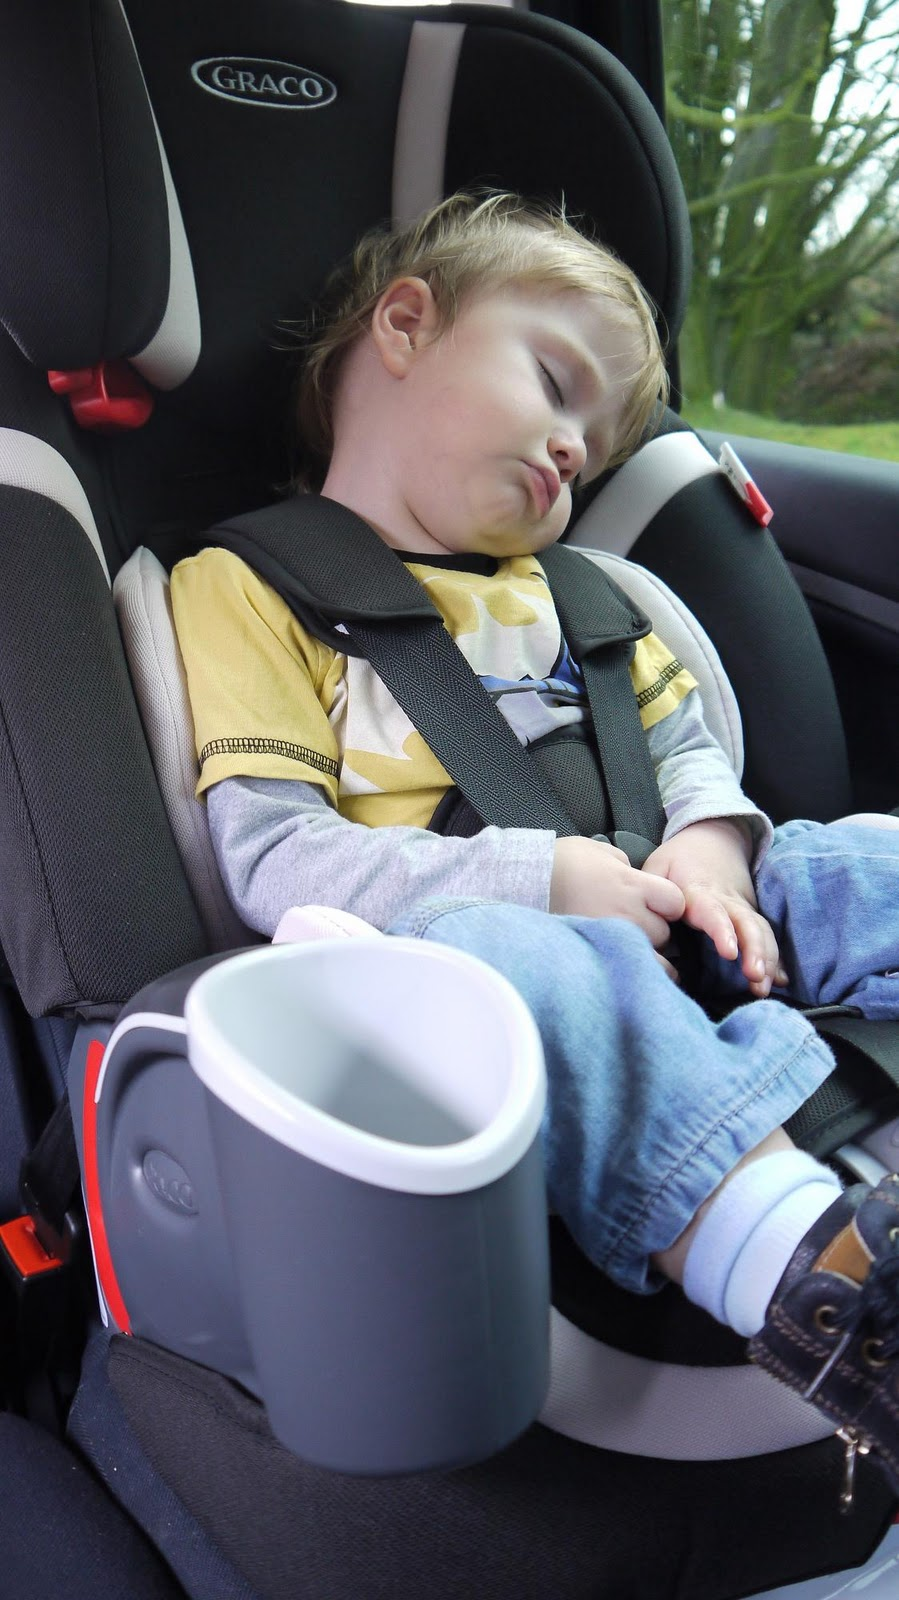 The Seat Is A Good Size And Freddy Seems Comfy In Padded It Quite High Giving Him View Out Of Car Window Which He Enjoys